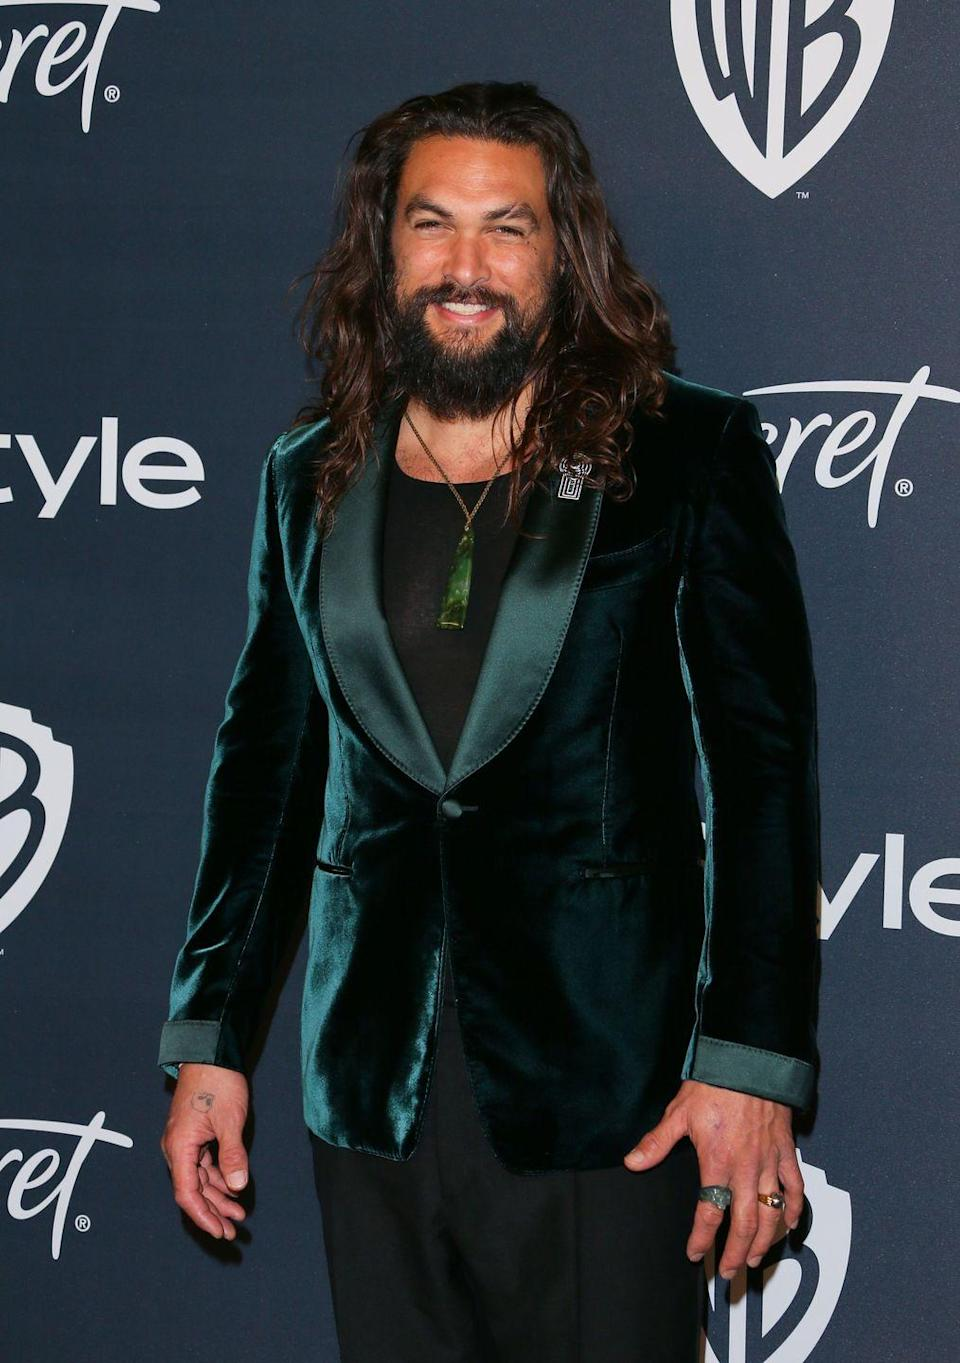 "<p>Now: Momoa has taken the acting world by storm with roles as Aquaman and Khal Drogo in Game of Thrones. With his buff physique and intimidating height, Momoa is known for starring as <a href=""https://www.imdb.com/name/nm0597388/?ref_=nmawd_awd_nm"" rel=""nofollow noopener"" target=""_blank"" data-ylk=""slk:warriors and tough figures in films"" class=""link rapid-noclick-resp"">warriors and tough figures in films</a>.</p>"